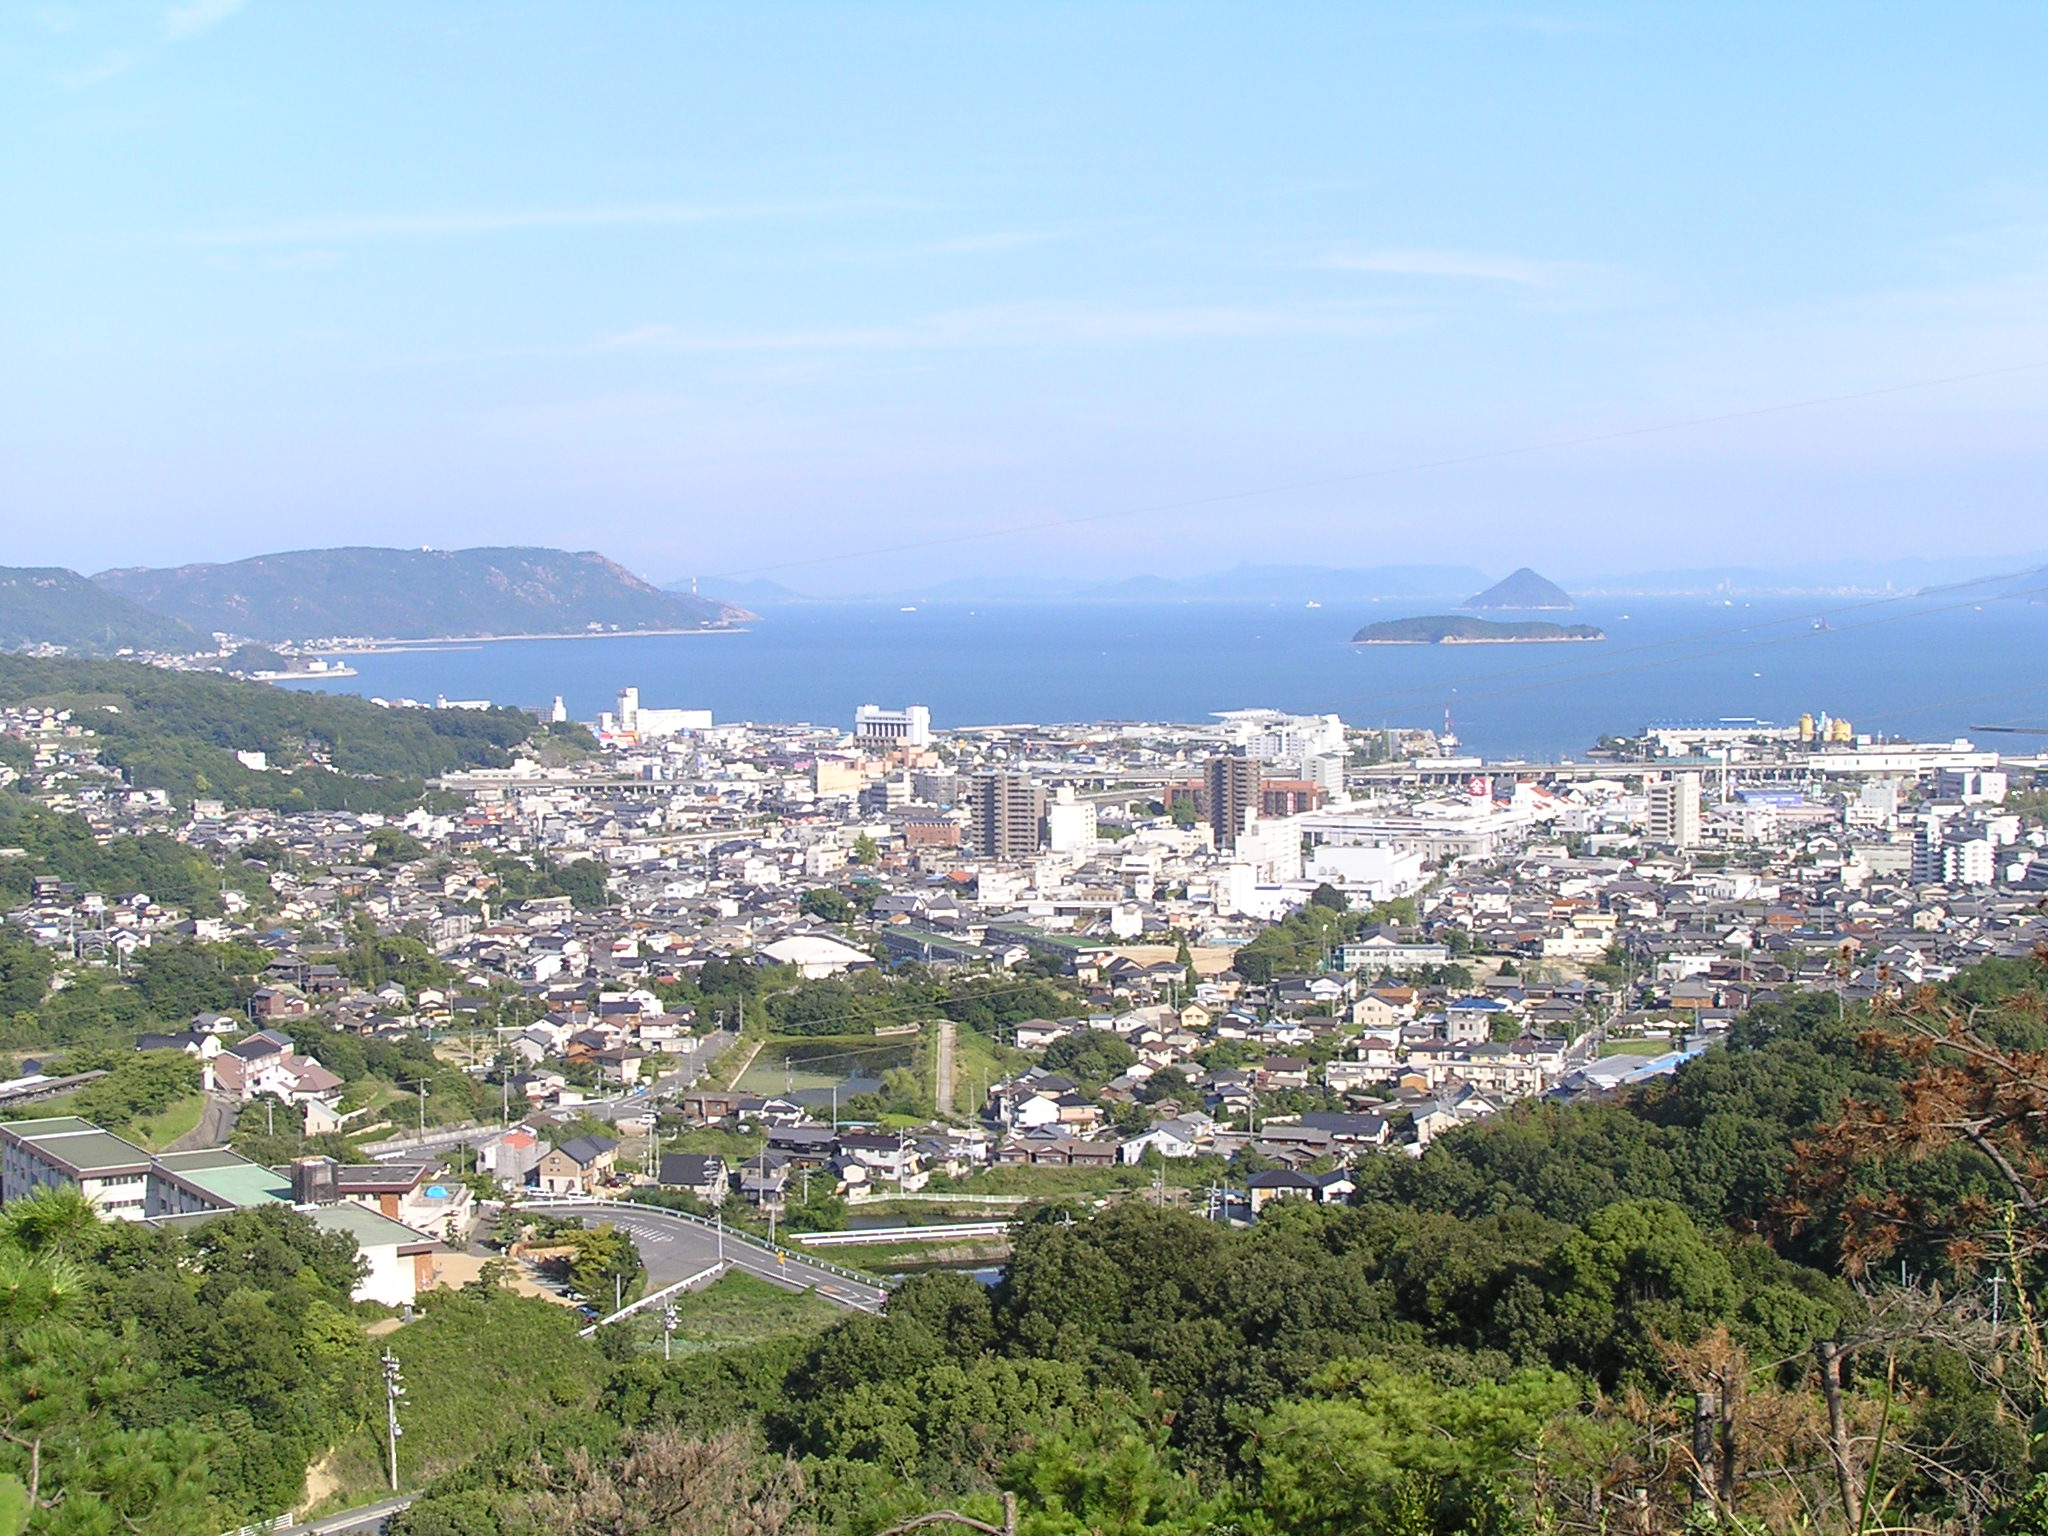 https://upload.wikimedia.org/wikipedia/commons/2/2e/Kurashiki_City_Kojima_town_seen_from_Washuzan_skyline.JPG